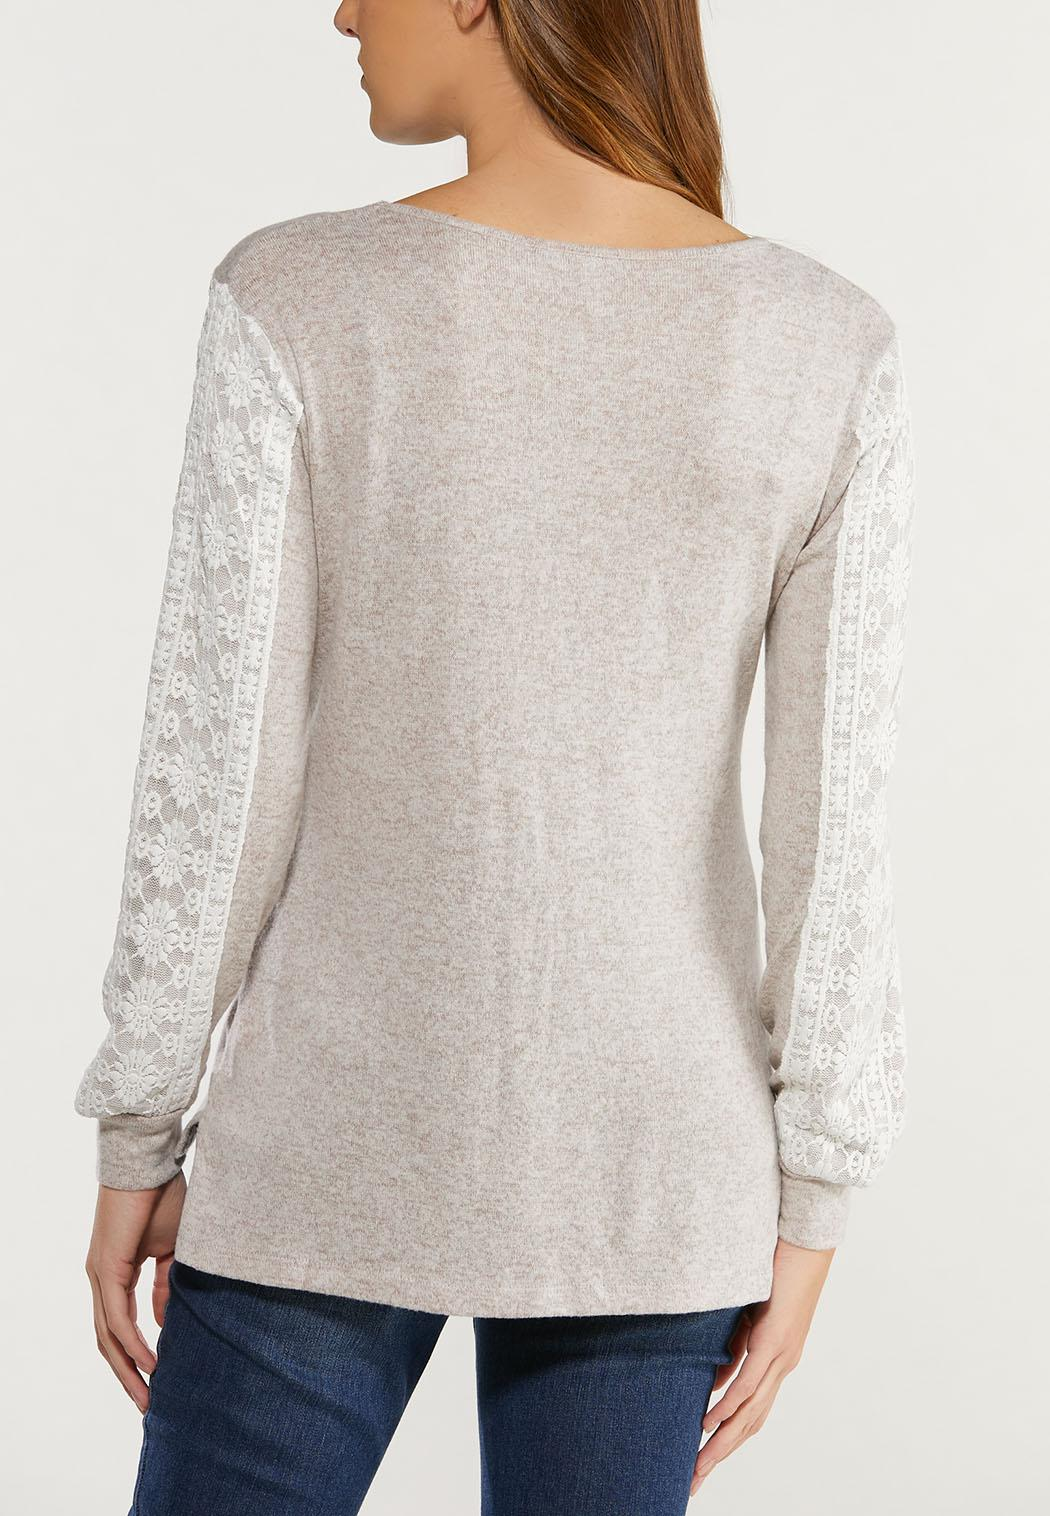 Plus Size Oatmeal Lace Sleeve Top (Item #44476922)